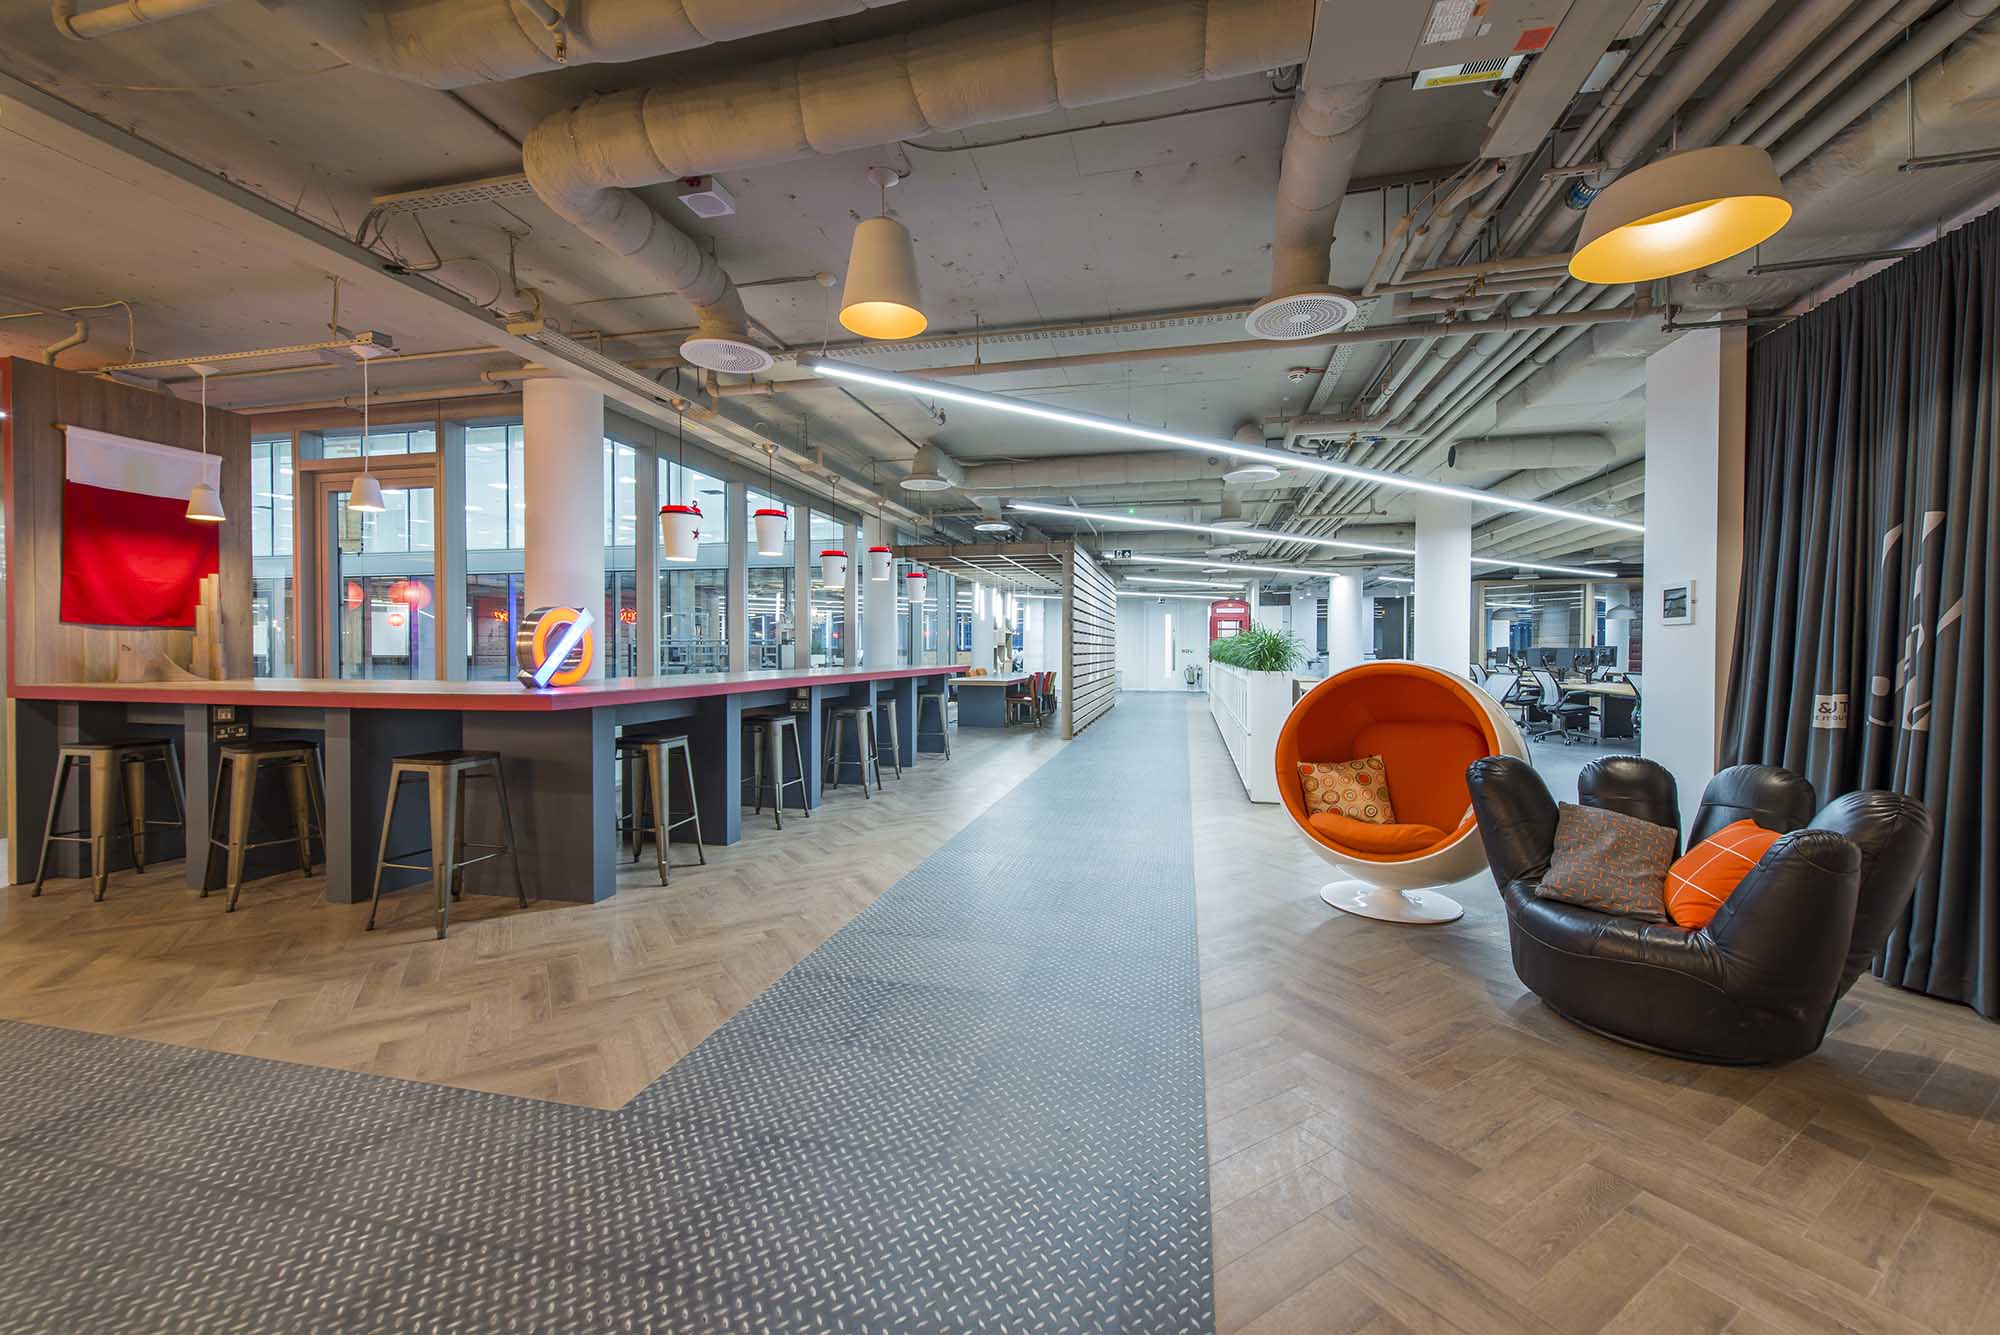 analysis of the pret a manger firm Pret a manger, the uk's leading retailer of natural, ready-to-eat sandwiches, salads and drinks, recently hired interior design firm peldon rose, to design their new offices, located in the westminster area of london.